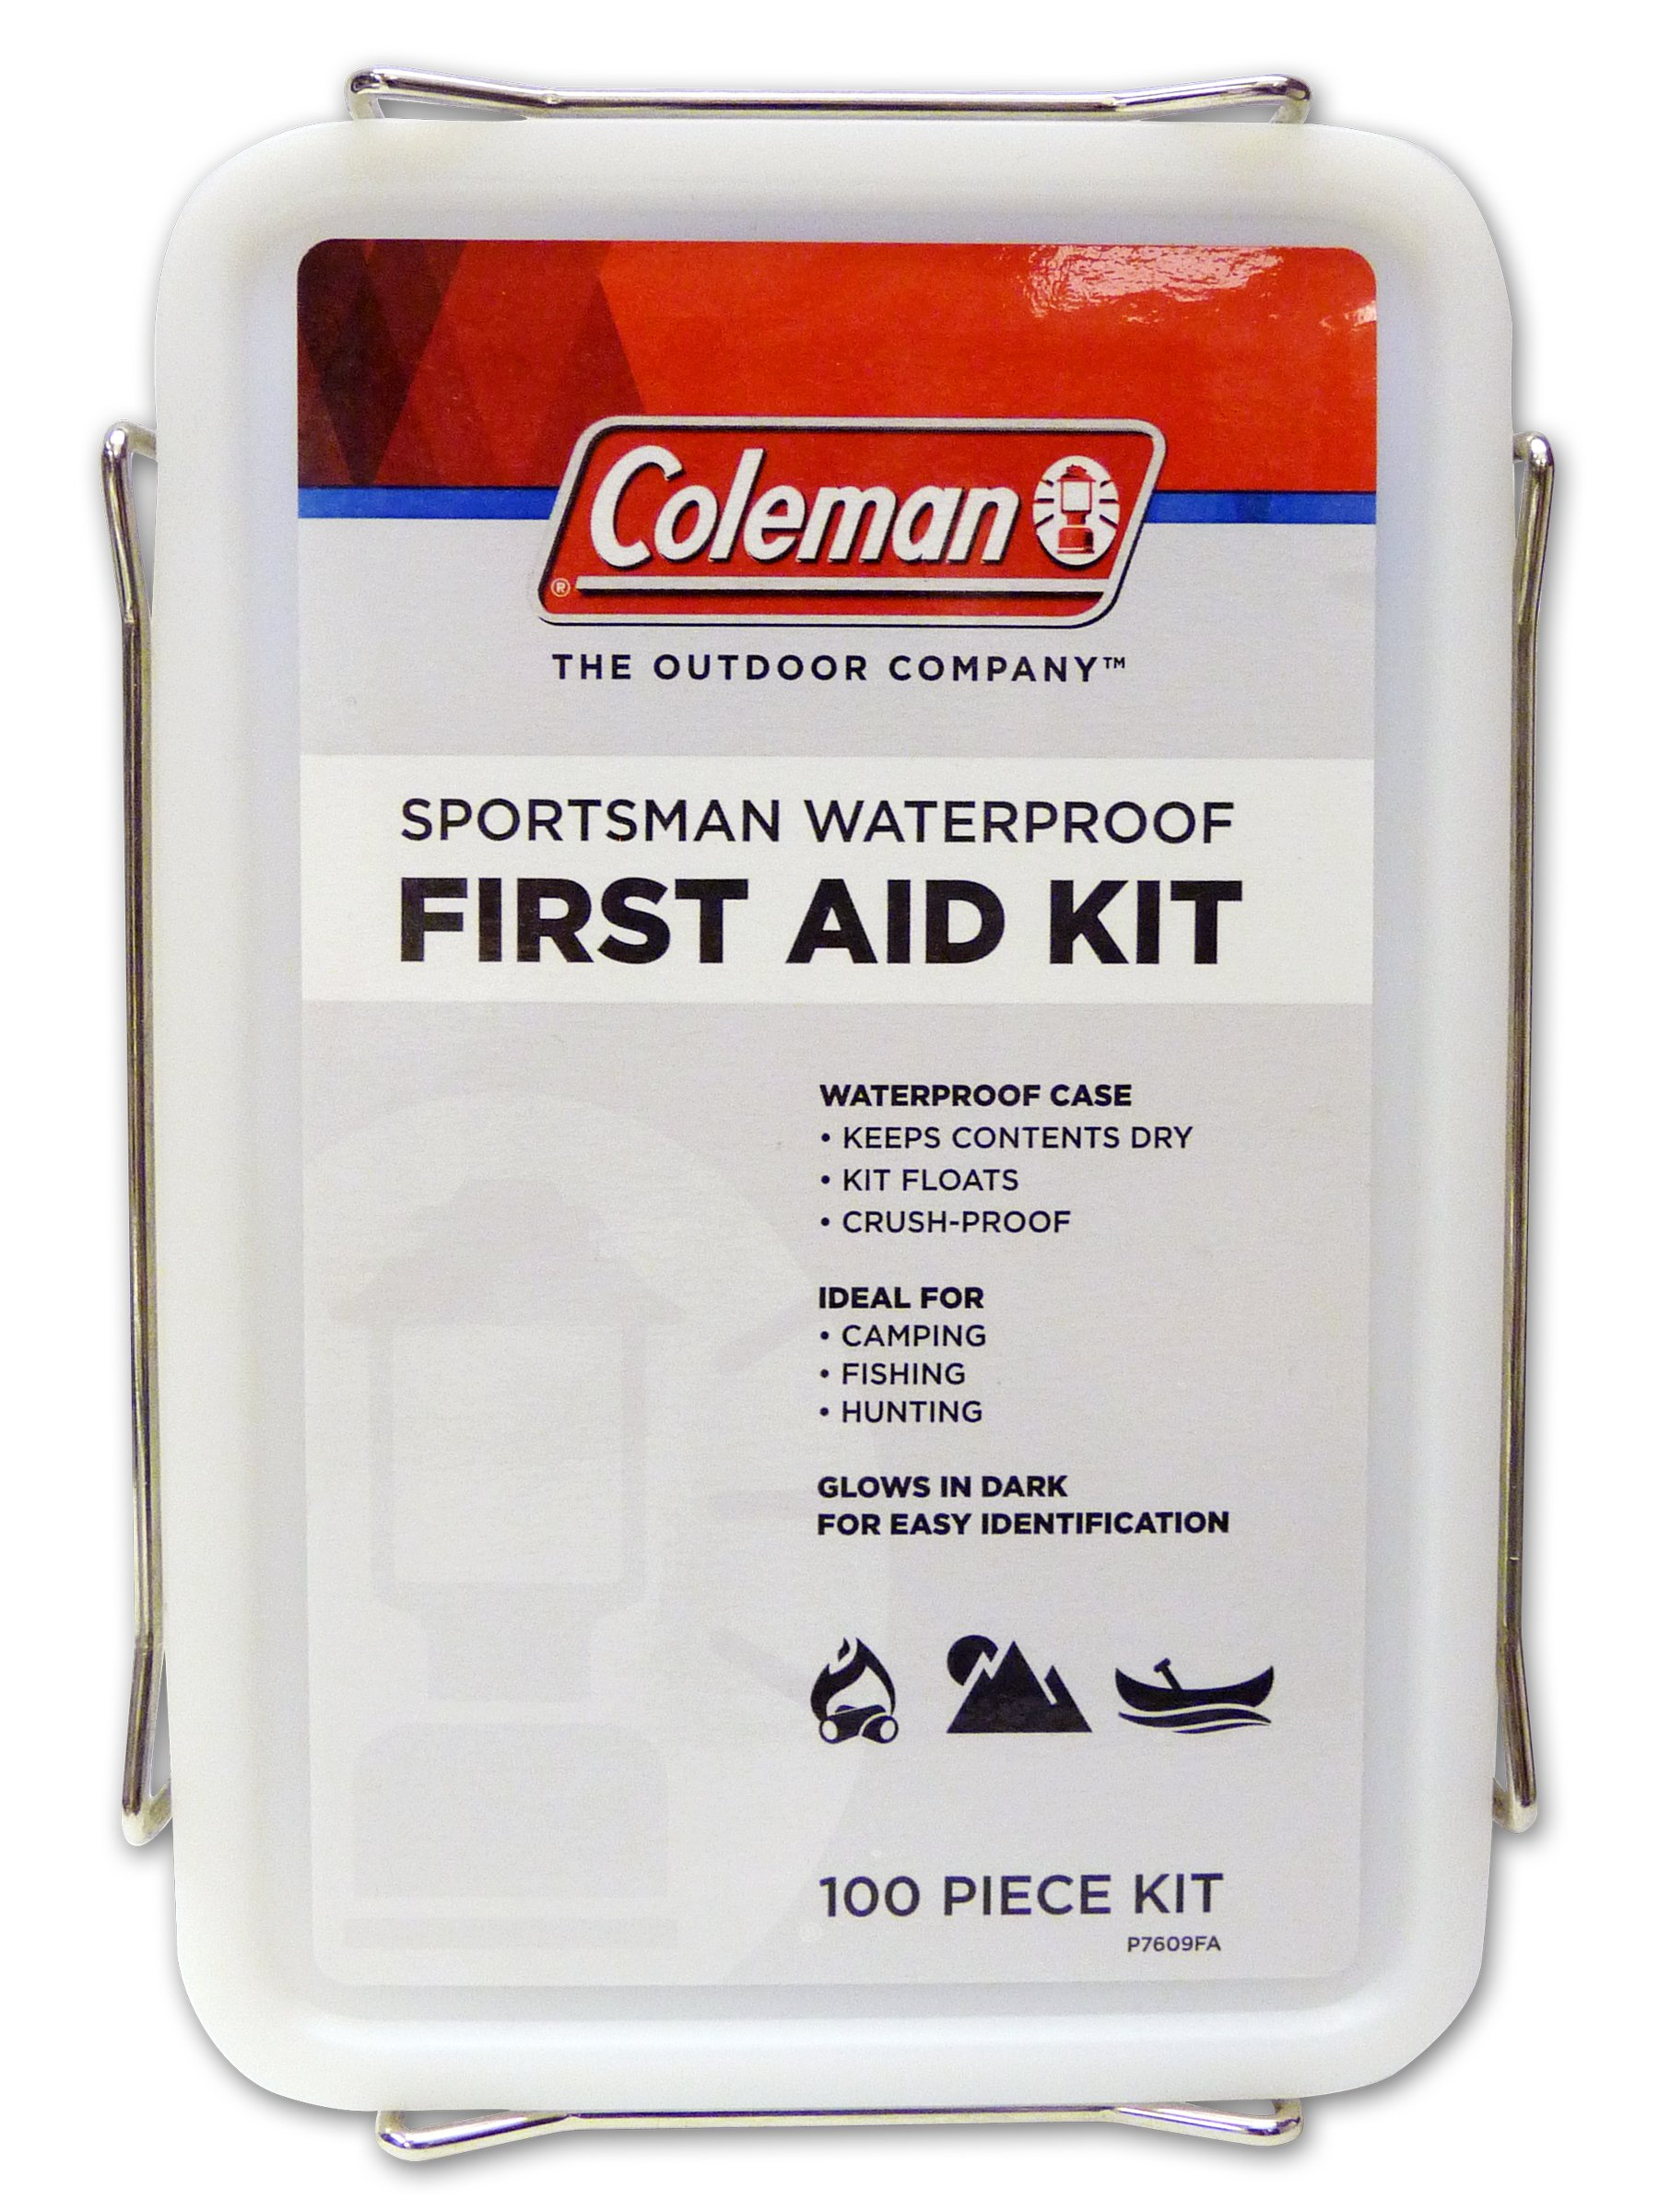 Coleman Sportsman Waterproof First Aid Kit, 100-Piece for boating